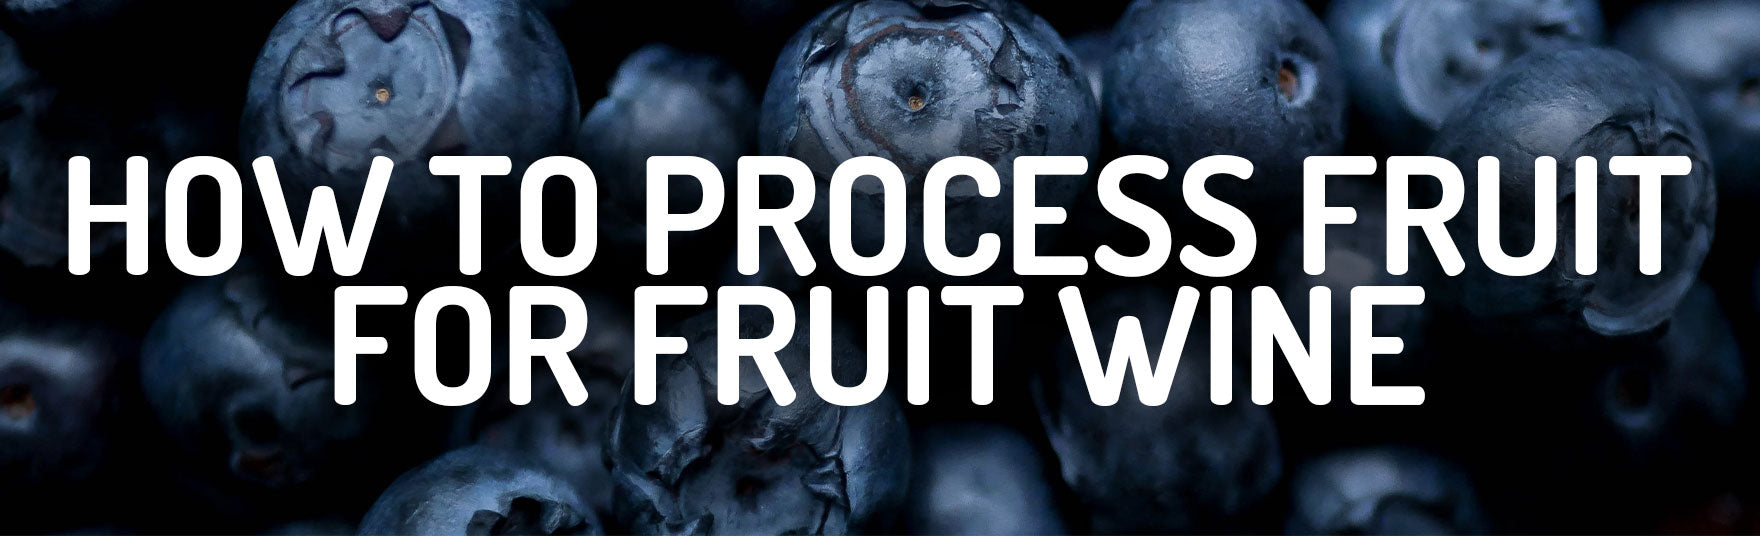 How To Process Fruit For Fruit Wine